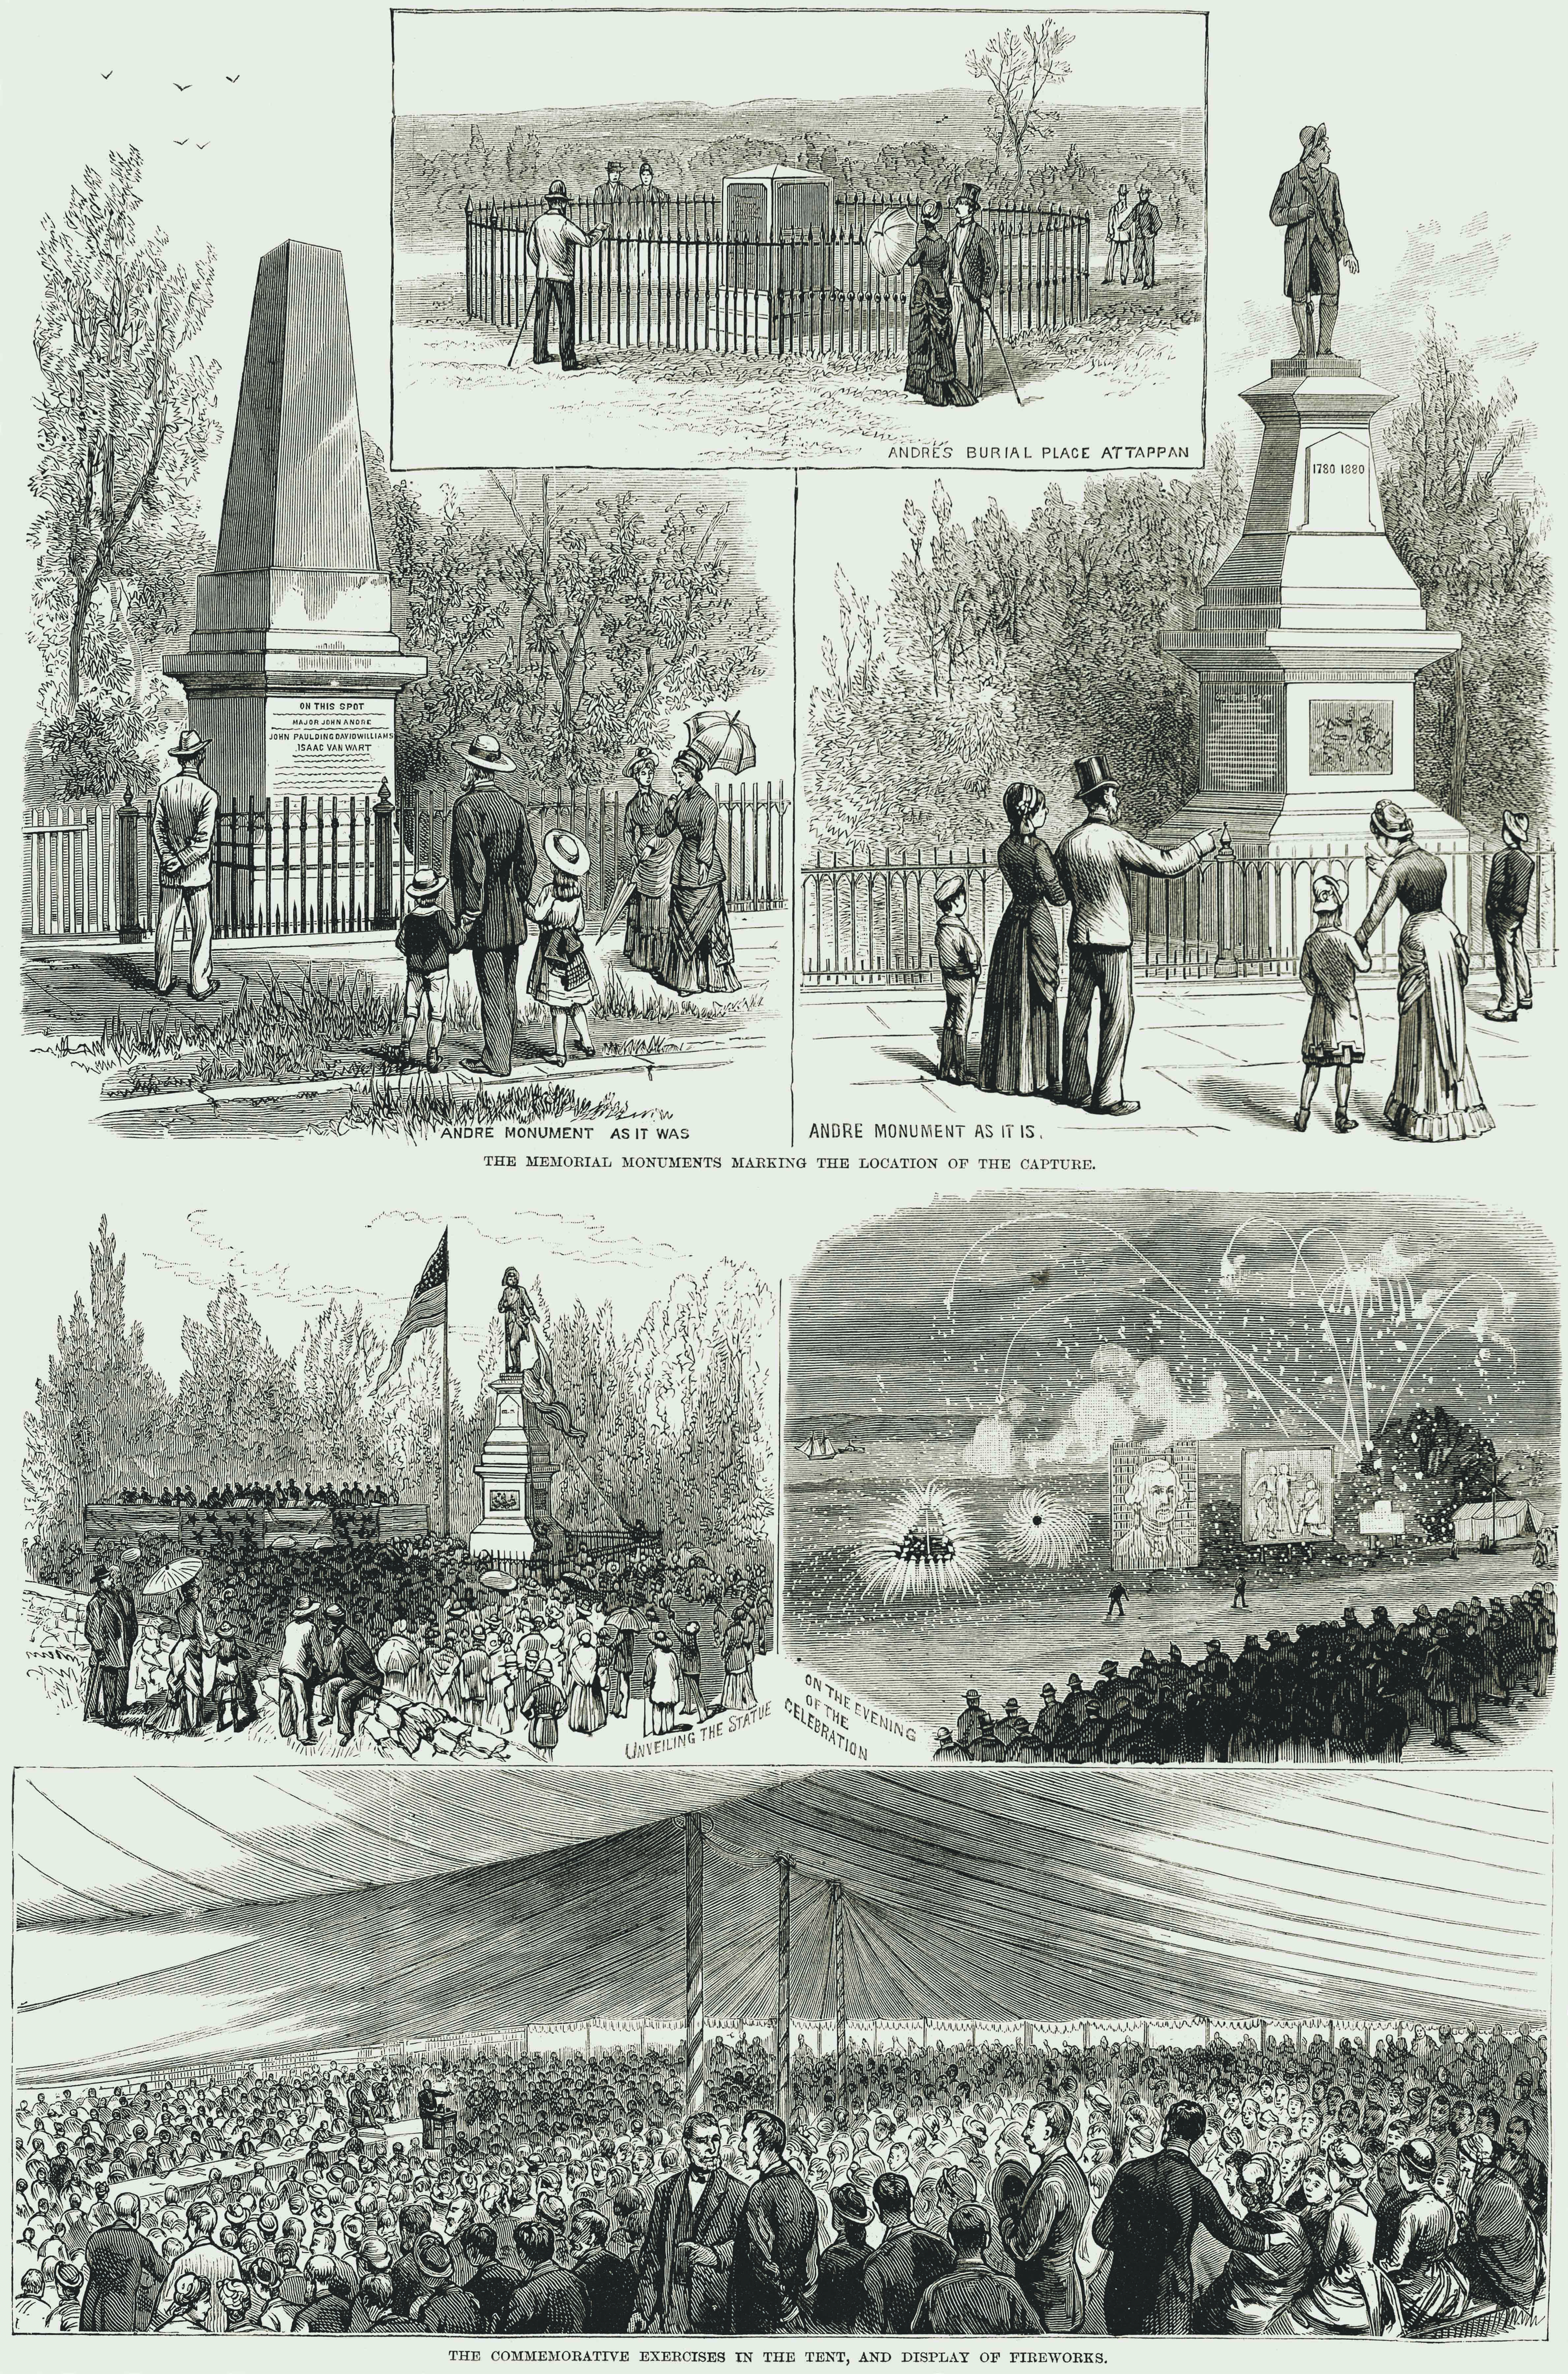 Images of the monument commemorating the capture of Major John Andre.